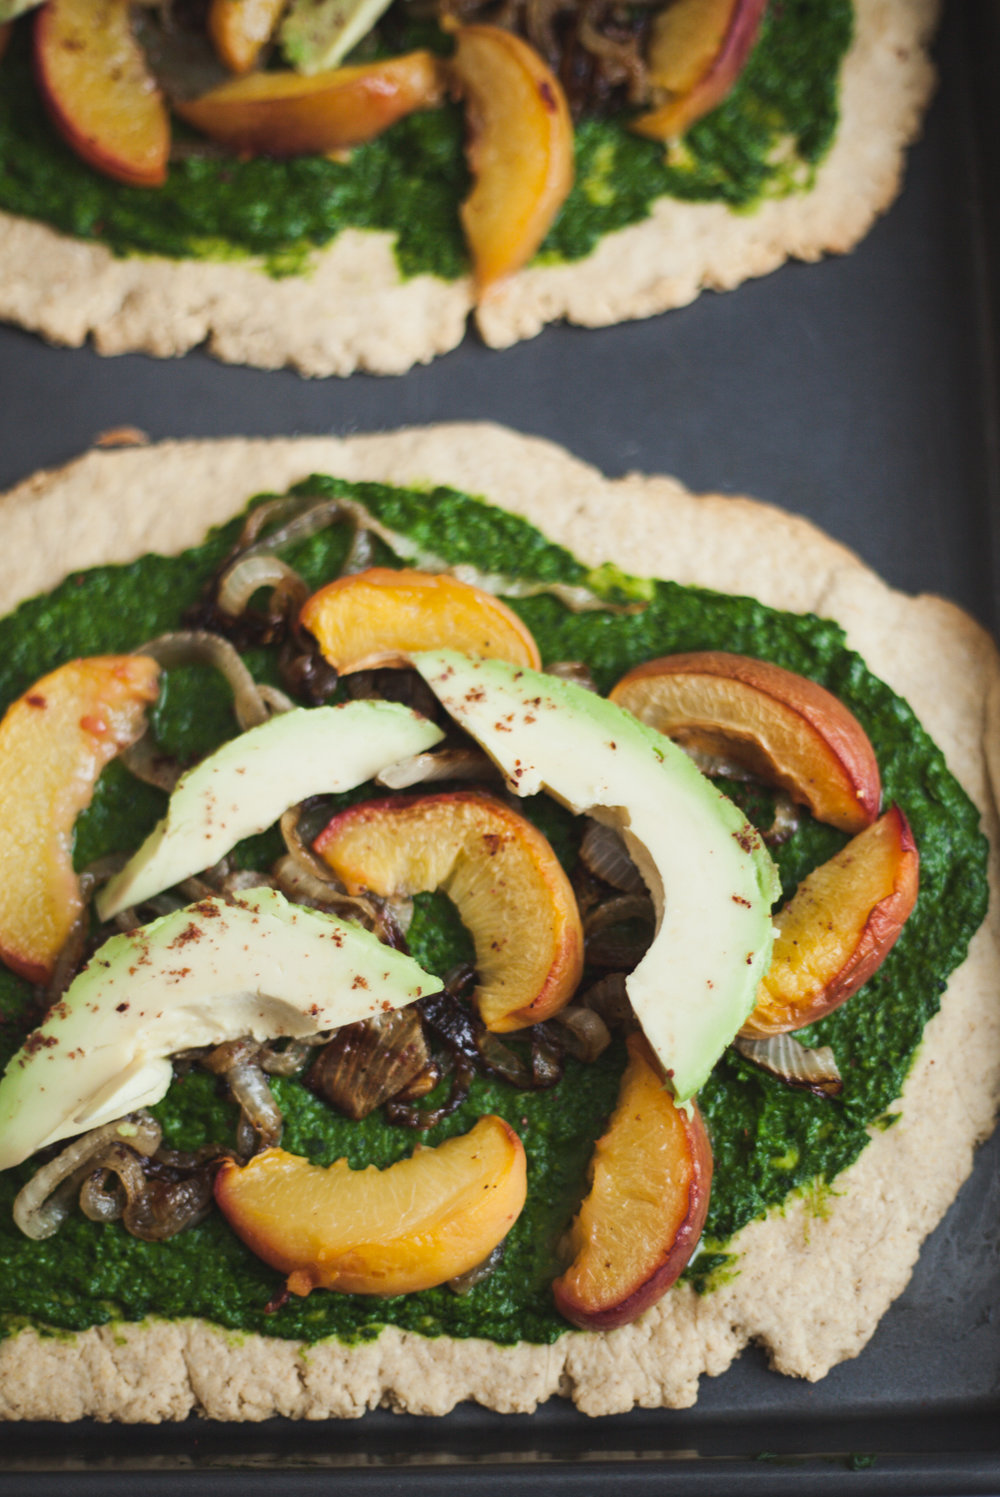 einkorn & oat flatbread w kale pesto, caramelized onions, avocado, peach, & sumac (vegan) via will frolic for food